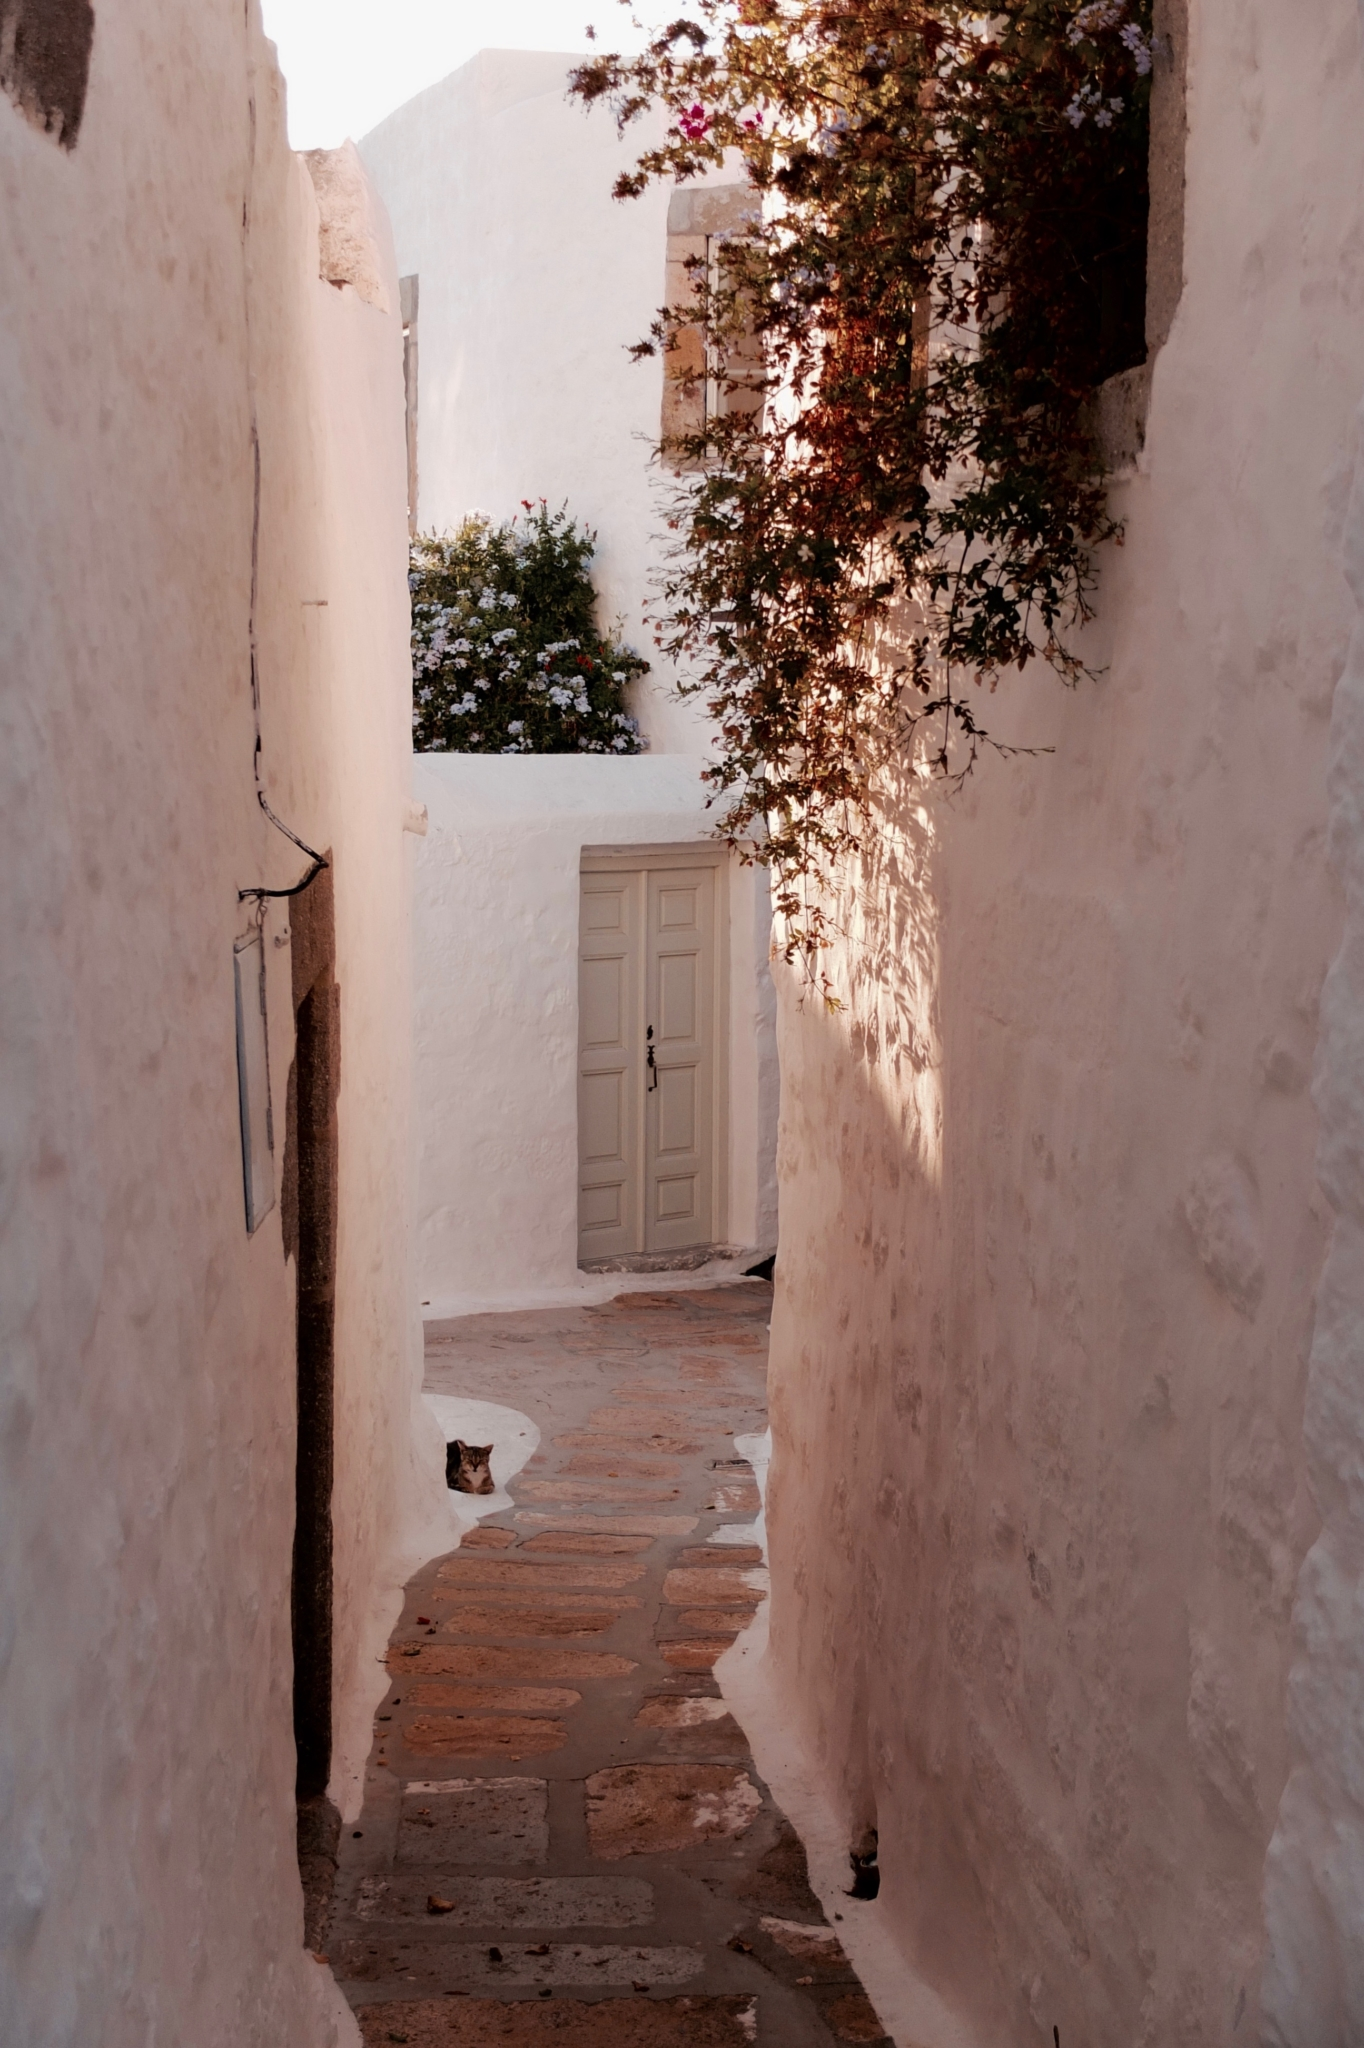 mediterranean wanderer, paula hagiefremidis, creative retreats, retreats, greek islands, writing workshop, The Best Holiday Destination to Unlock Your Creative Confidence